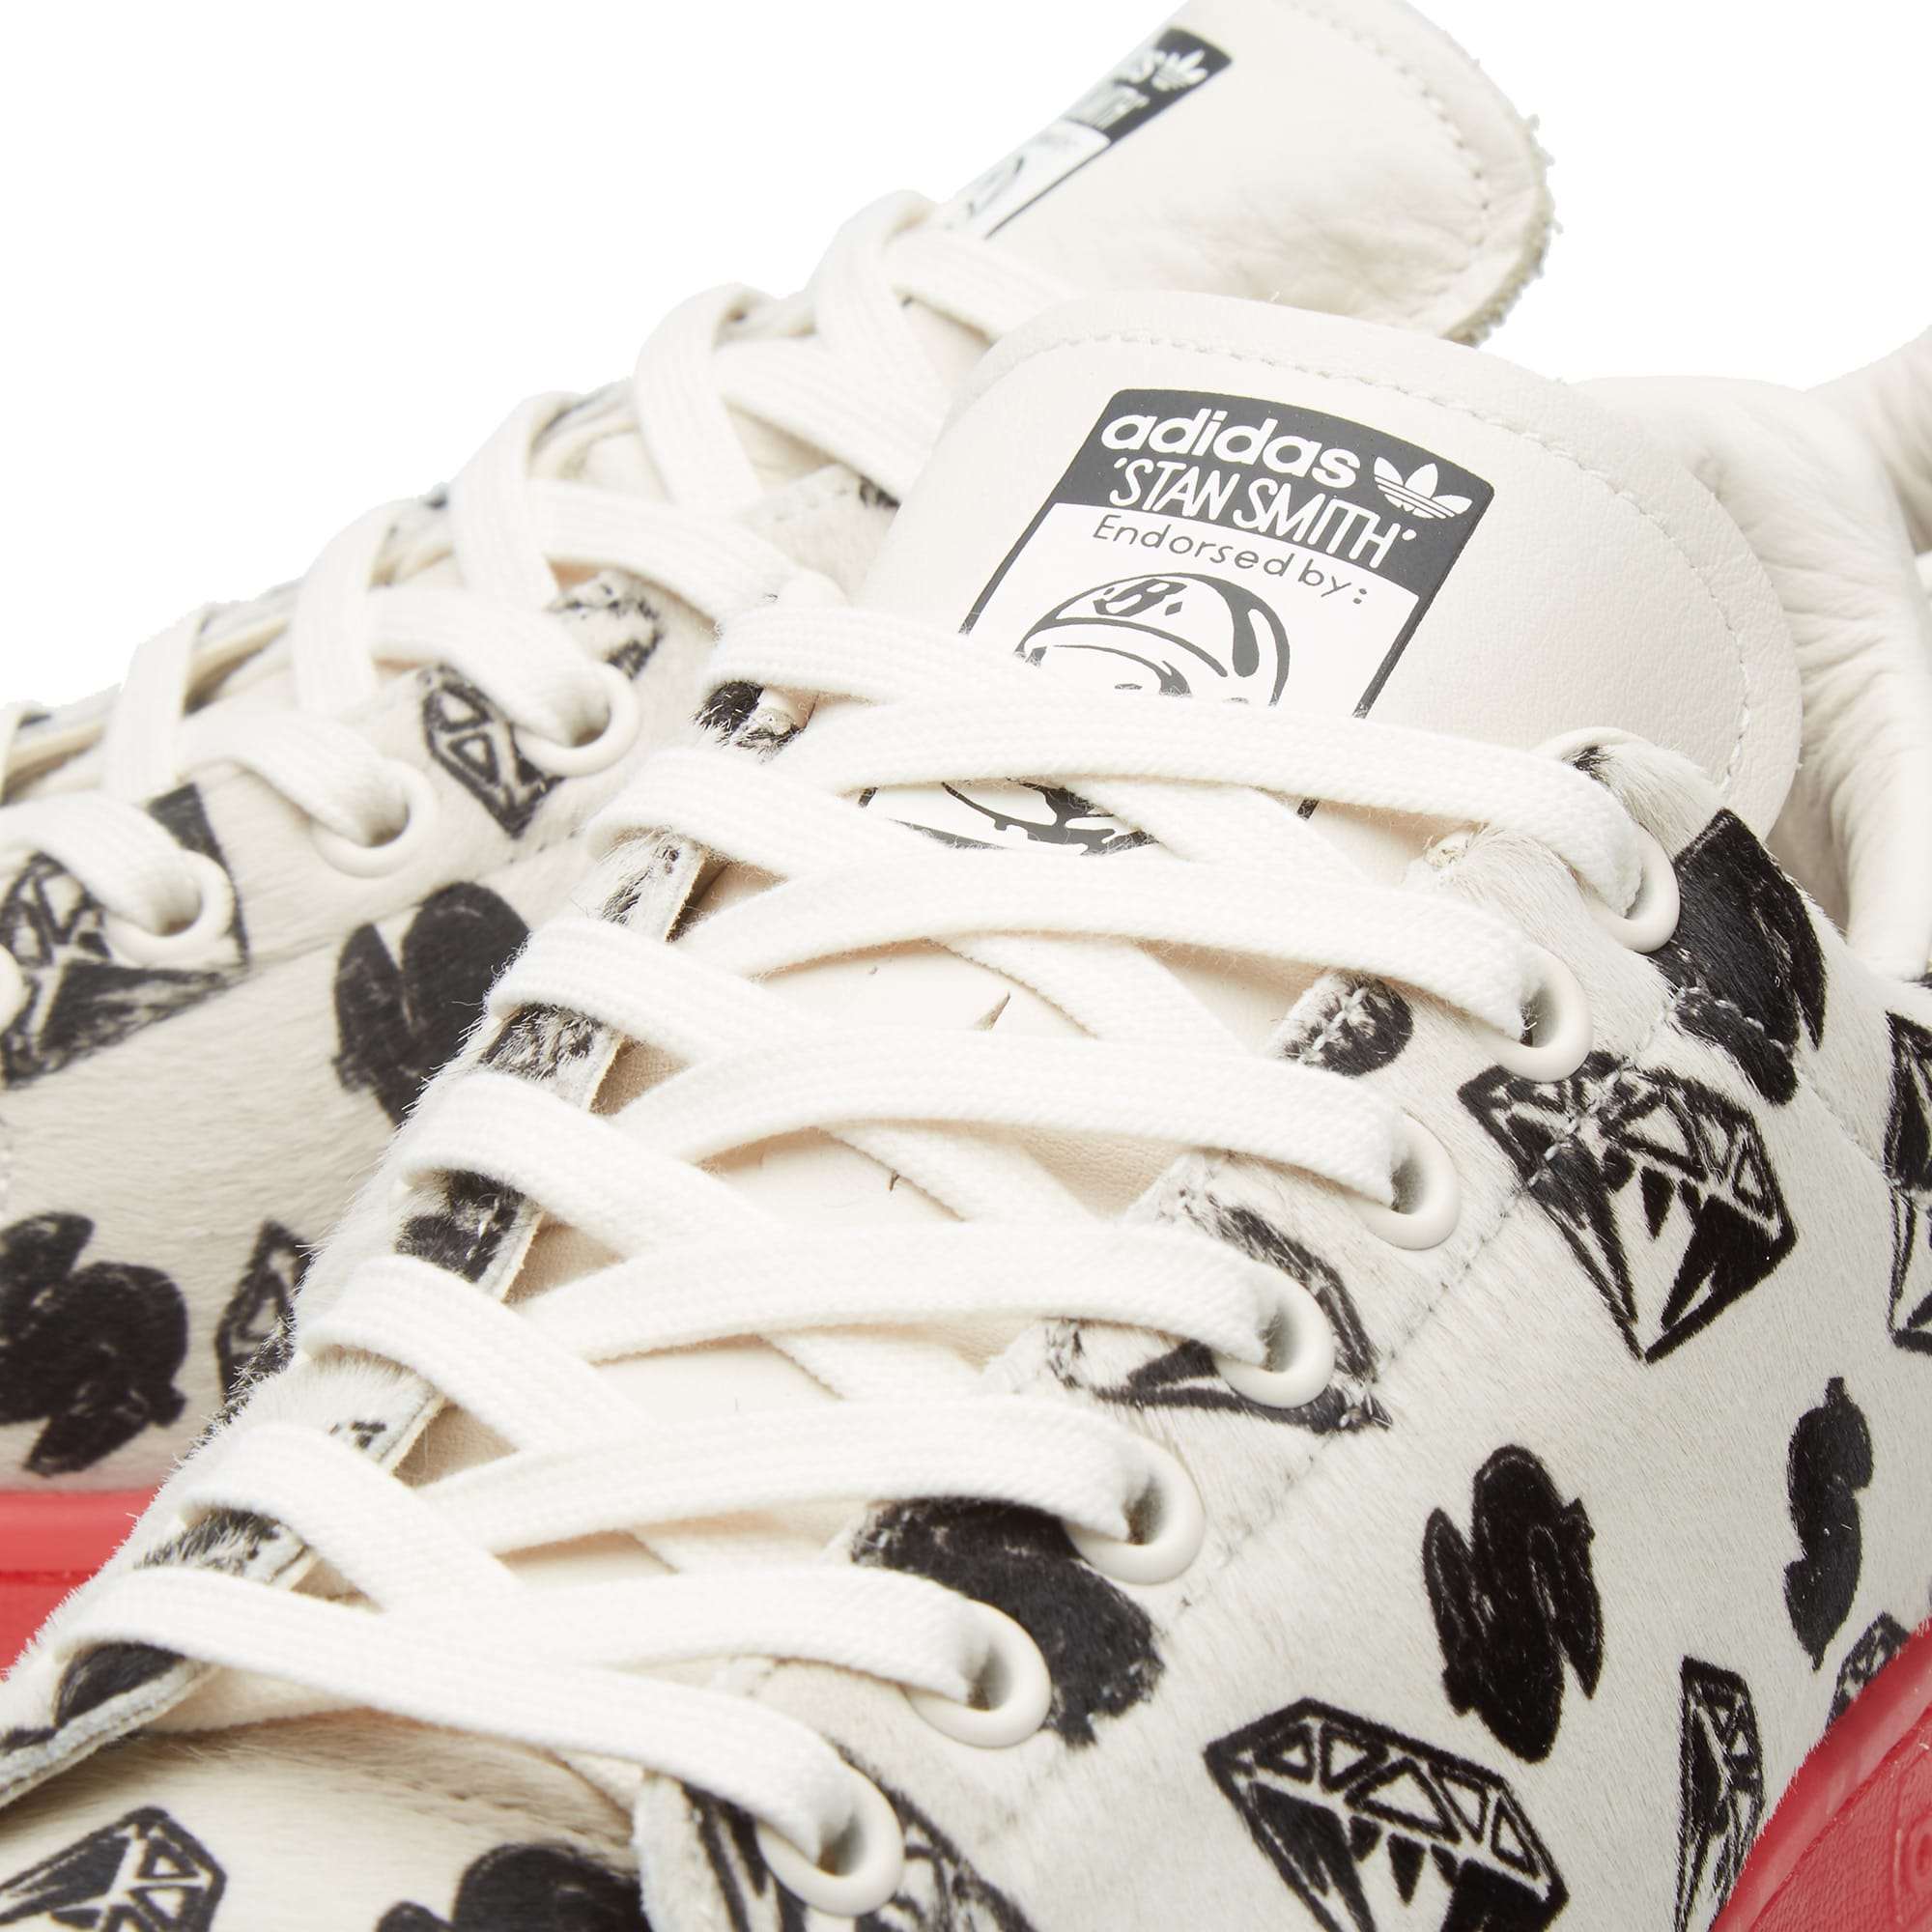 ab6d782238d97 Adidas Consortium x Pharrell x BBC Stan Smith  Pony Hair  Chalk White   Red